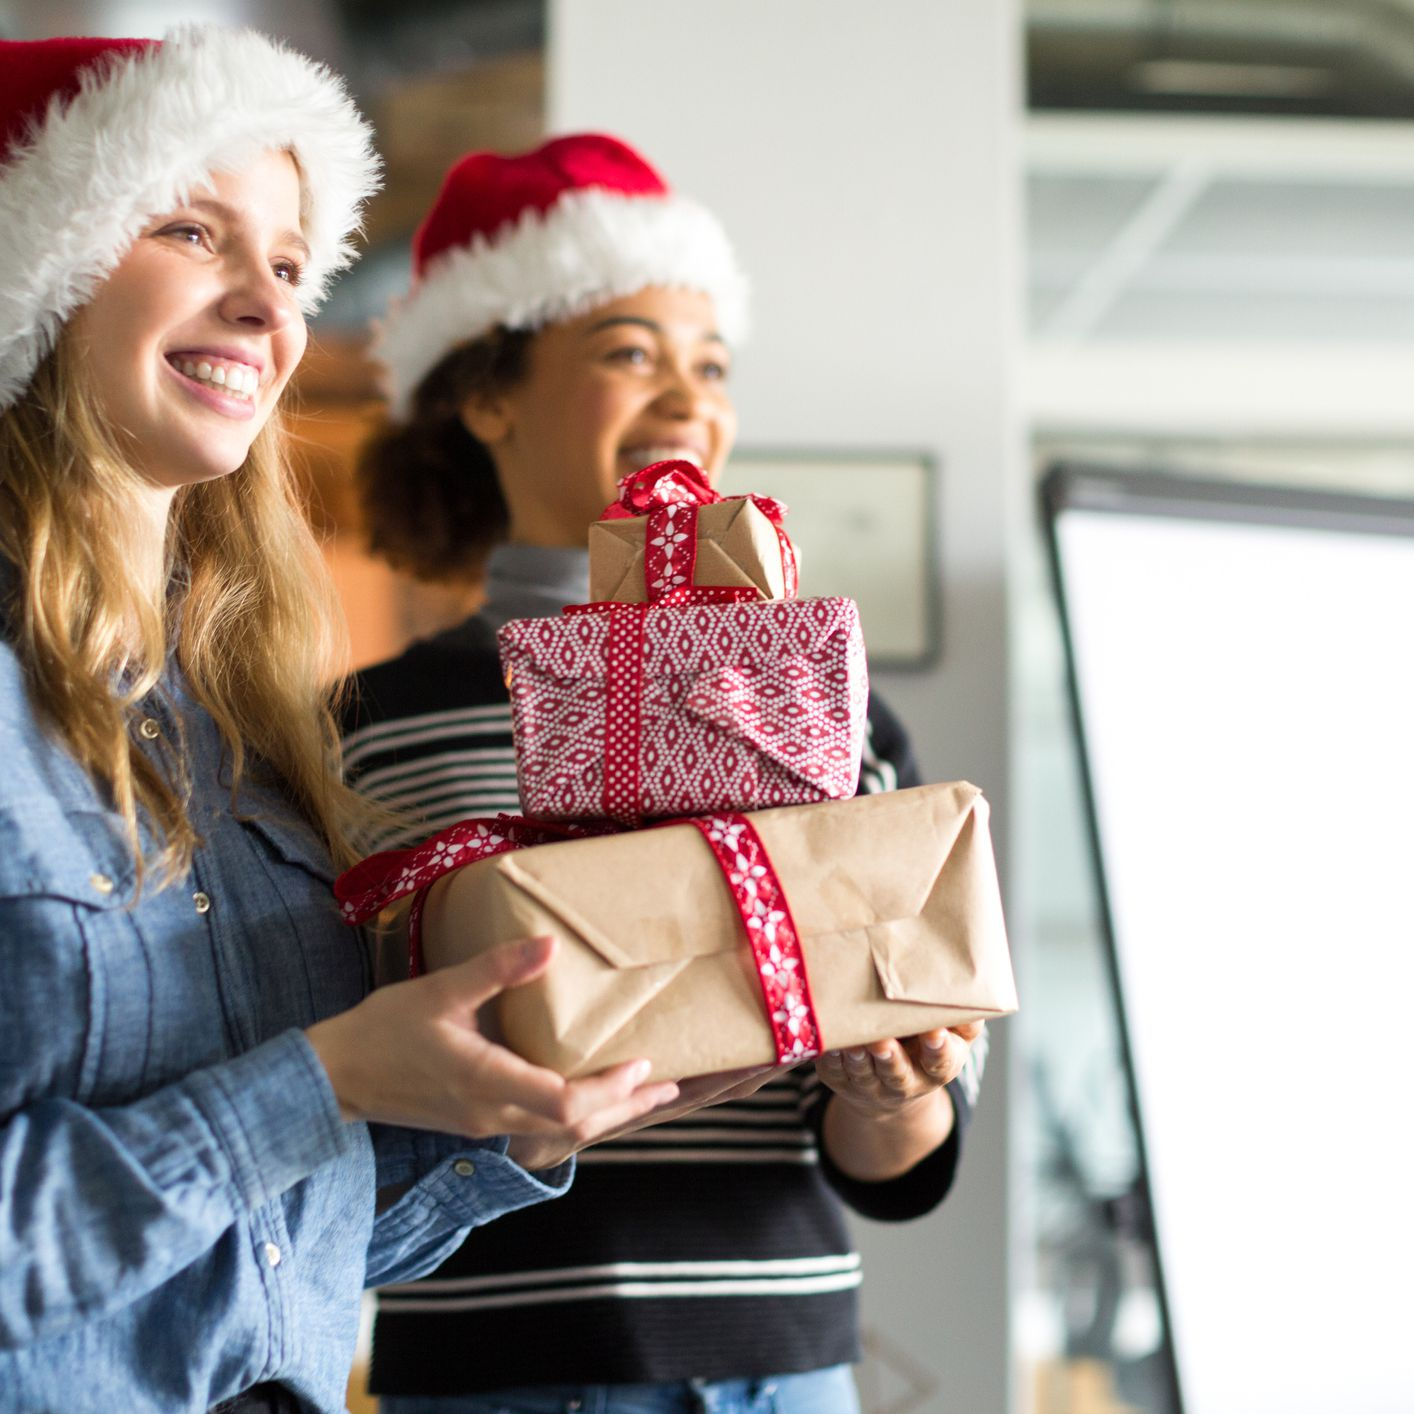 Try These 5 Tips for Keeping Your Holiday Spending Under Wraps